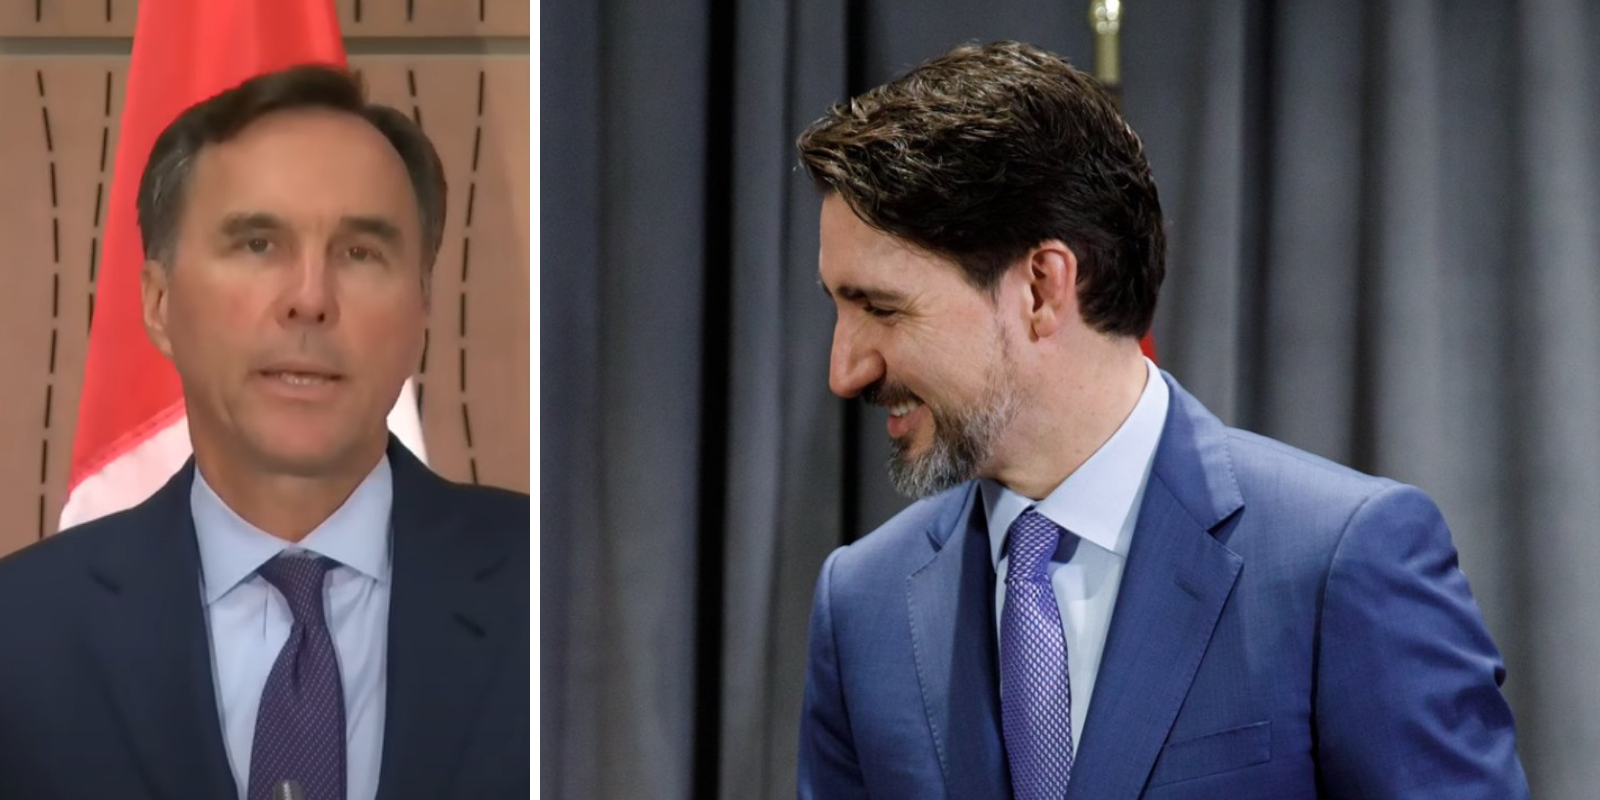 Things will keep getting worse until Trudeau resigns